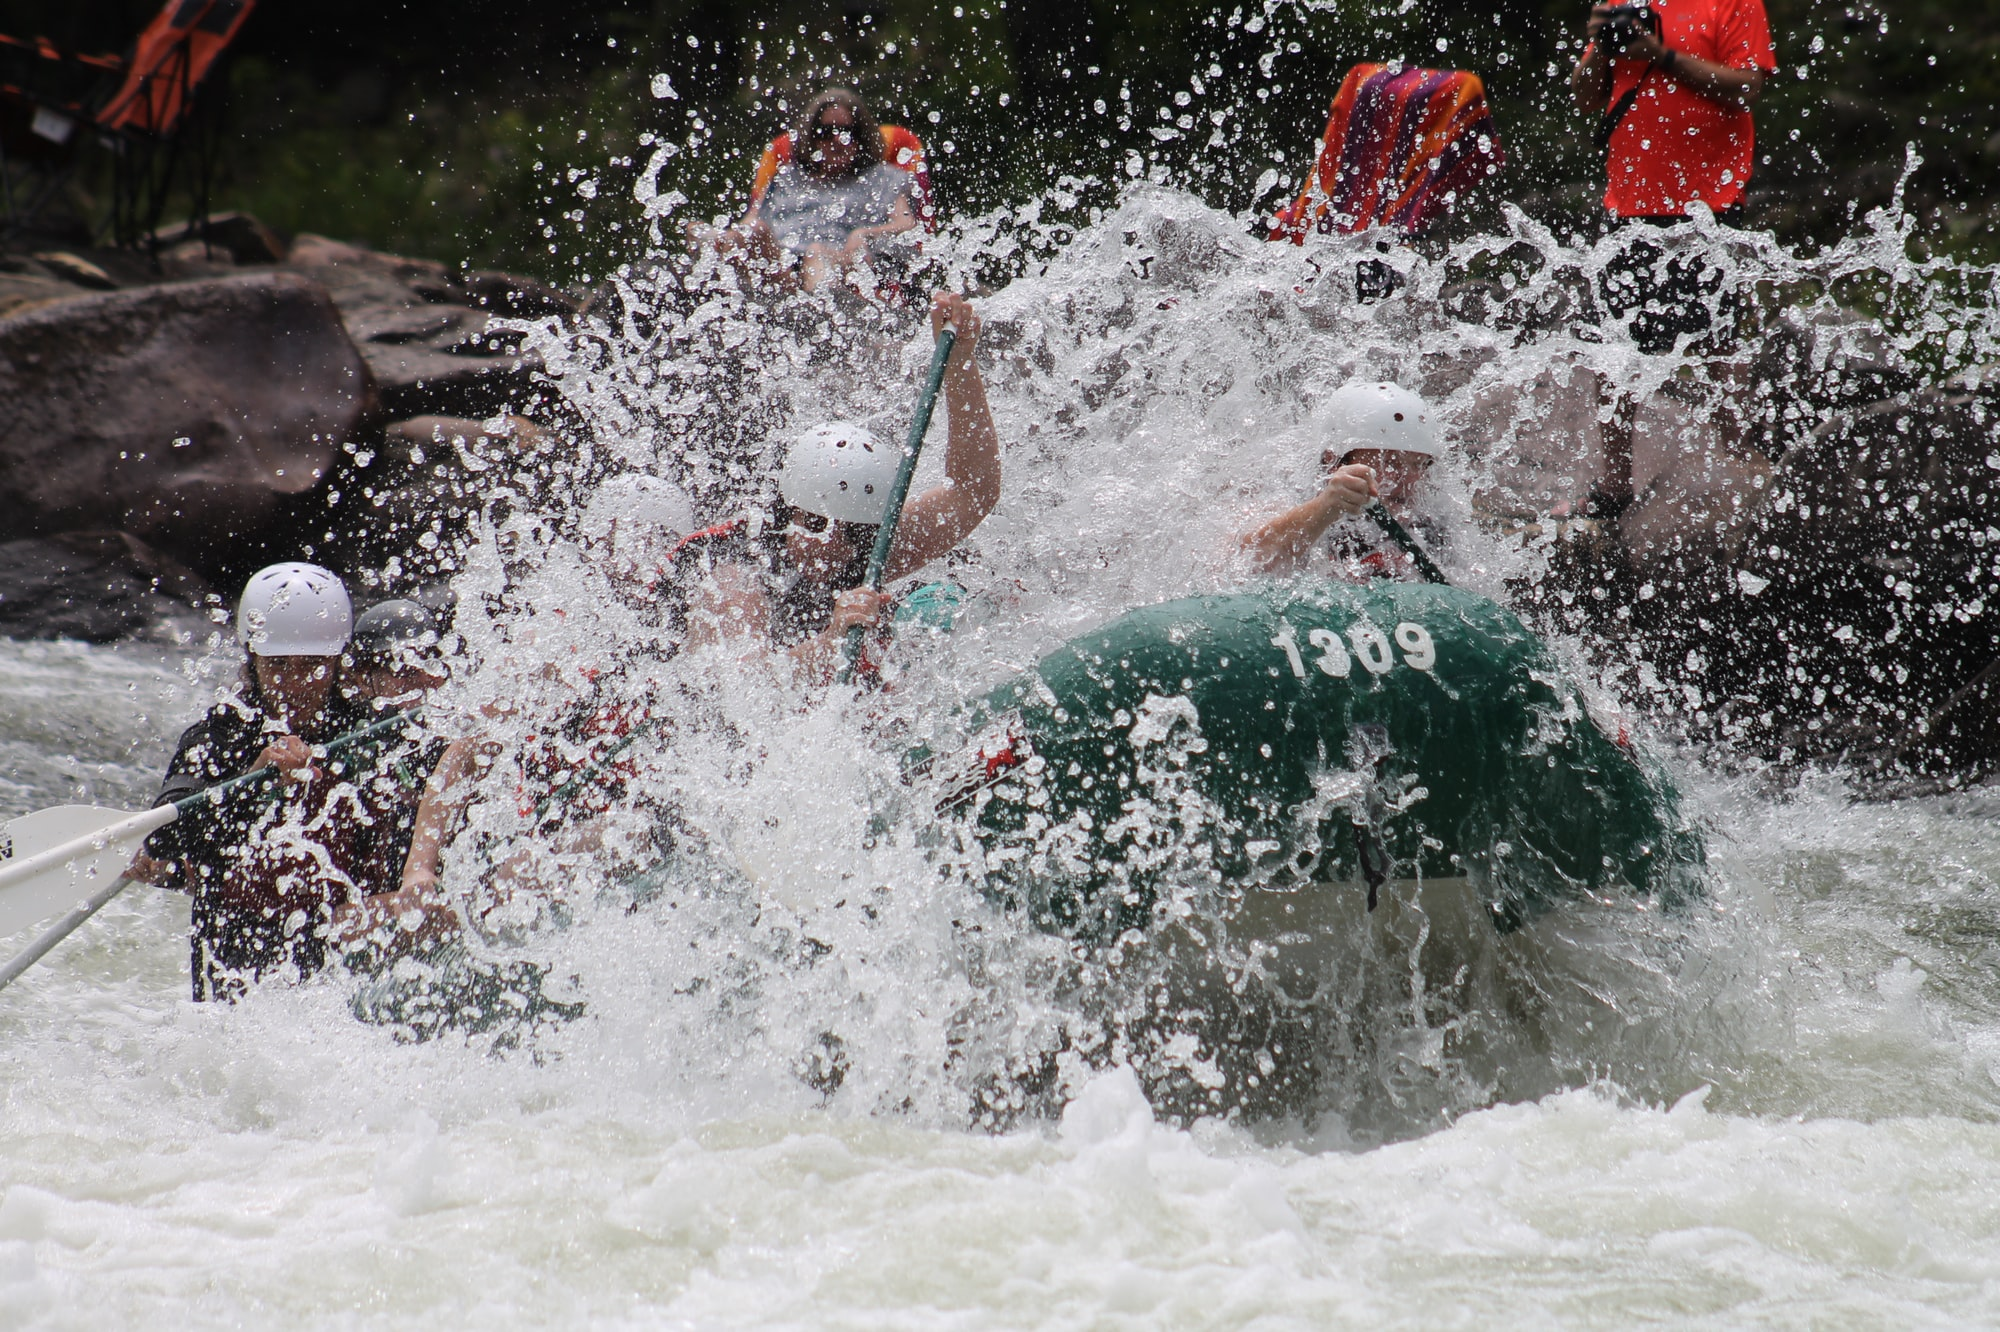 During a hot summer day, if I'm not guiding a raft, I can be found on the banks helping our photo team take photos for our guest to purchase. This particular photo truly captured the splashes and the fun the Ocoee River has to offer!